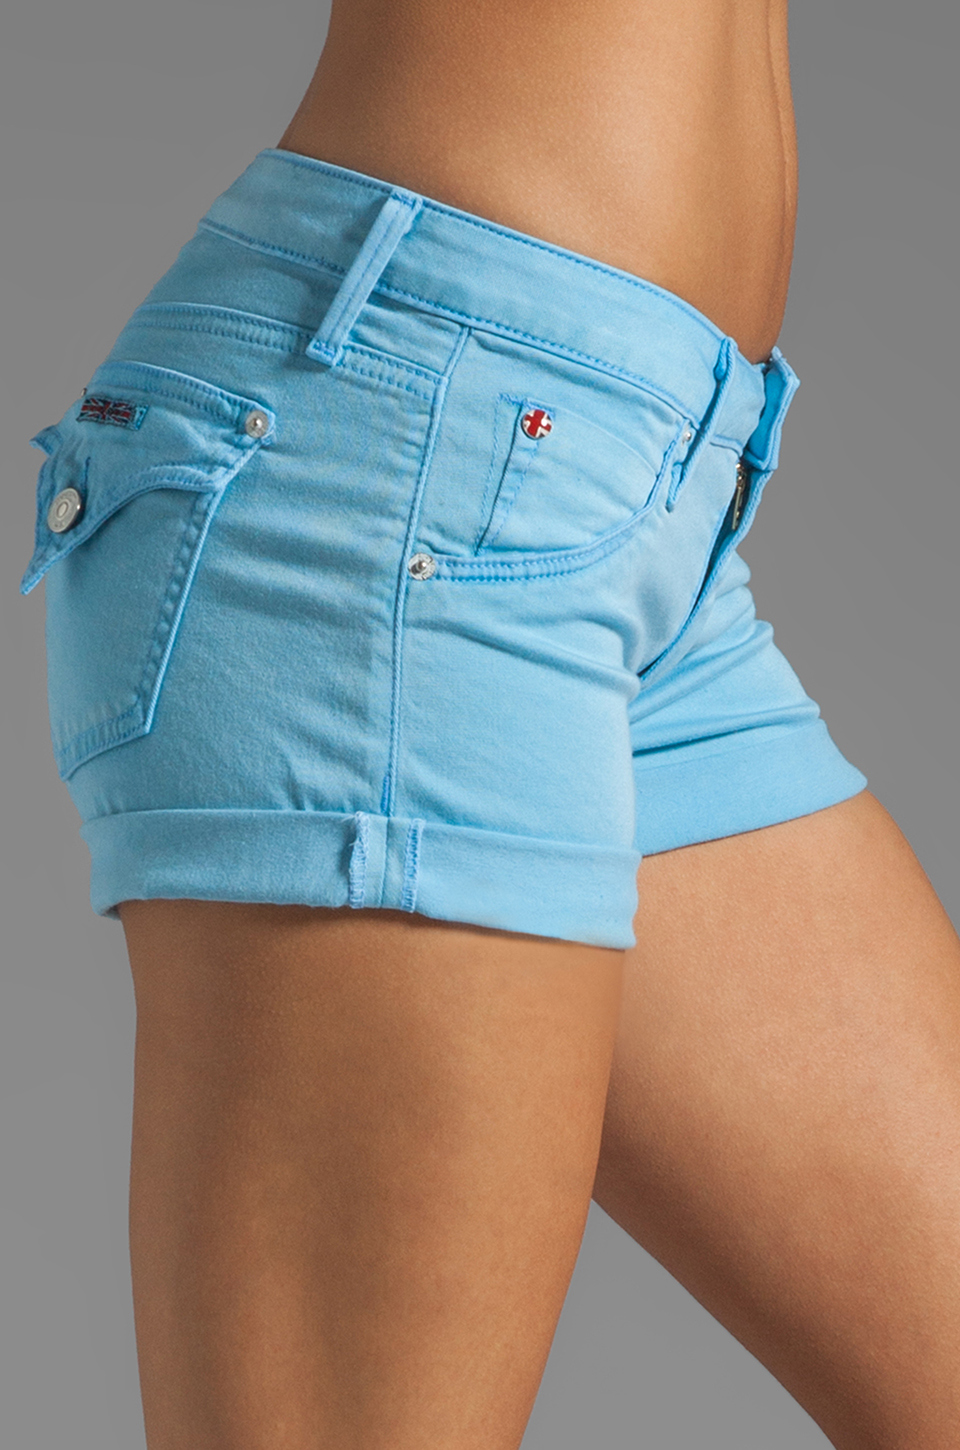 Hudson Jeans Hampton Cuff Short in Poolside